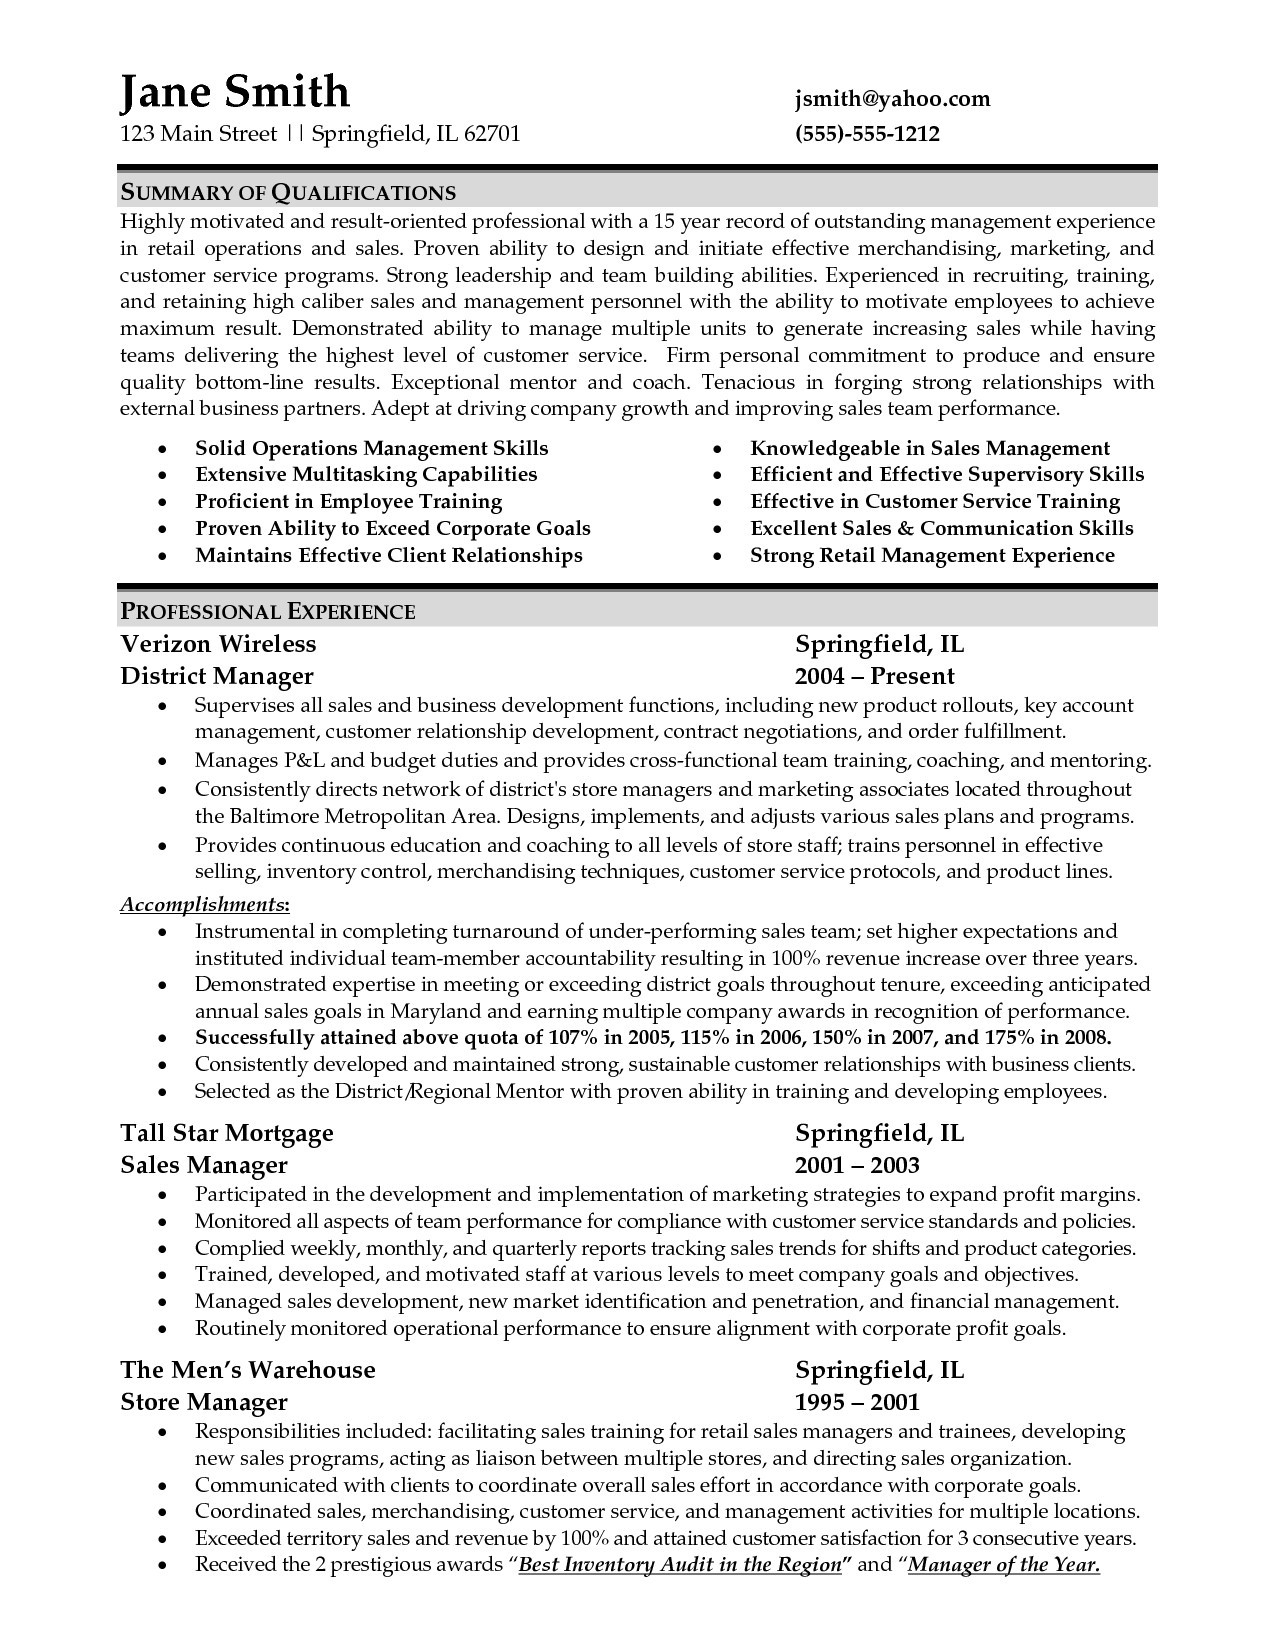 Retail Store Manager Resume Template - 20 Retail Store Manager Resume